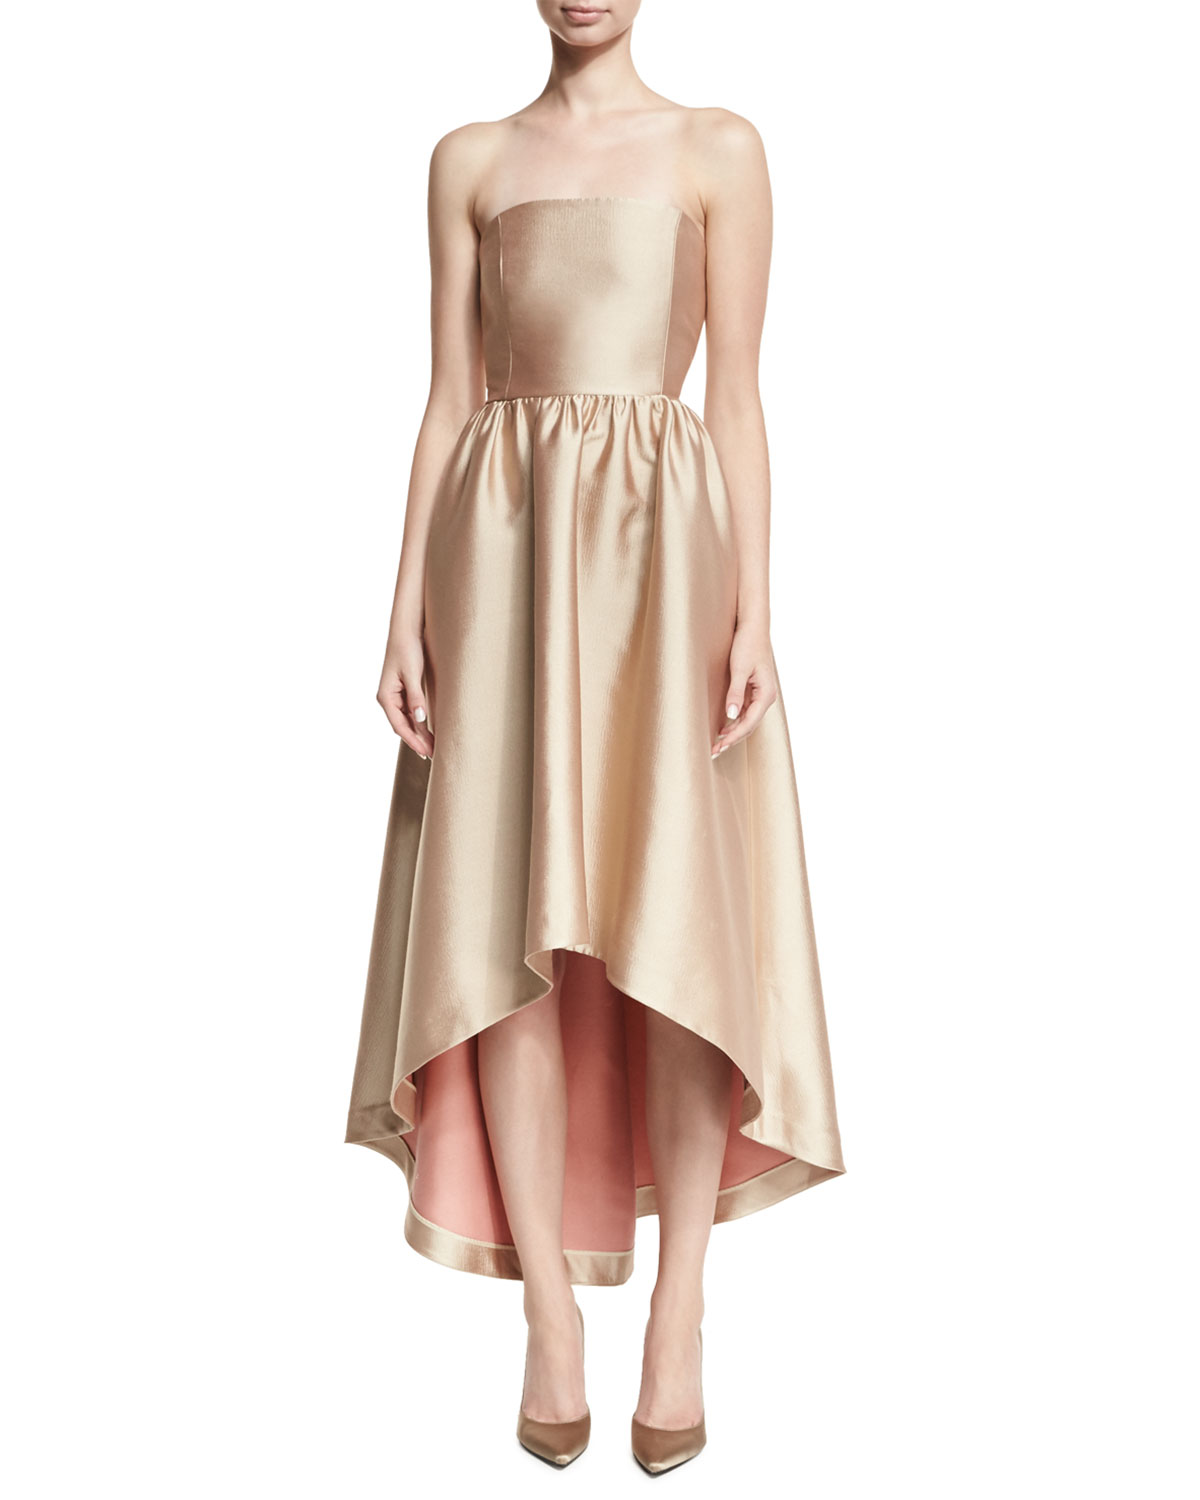 Co Strapless Satin High-Low Cocktail Dress | Neiman Marcus